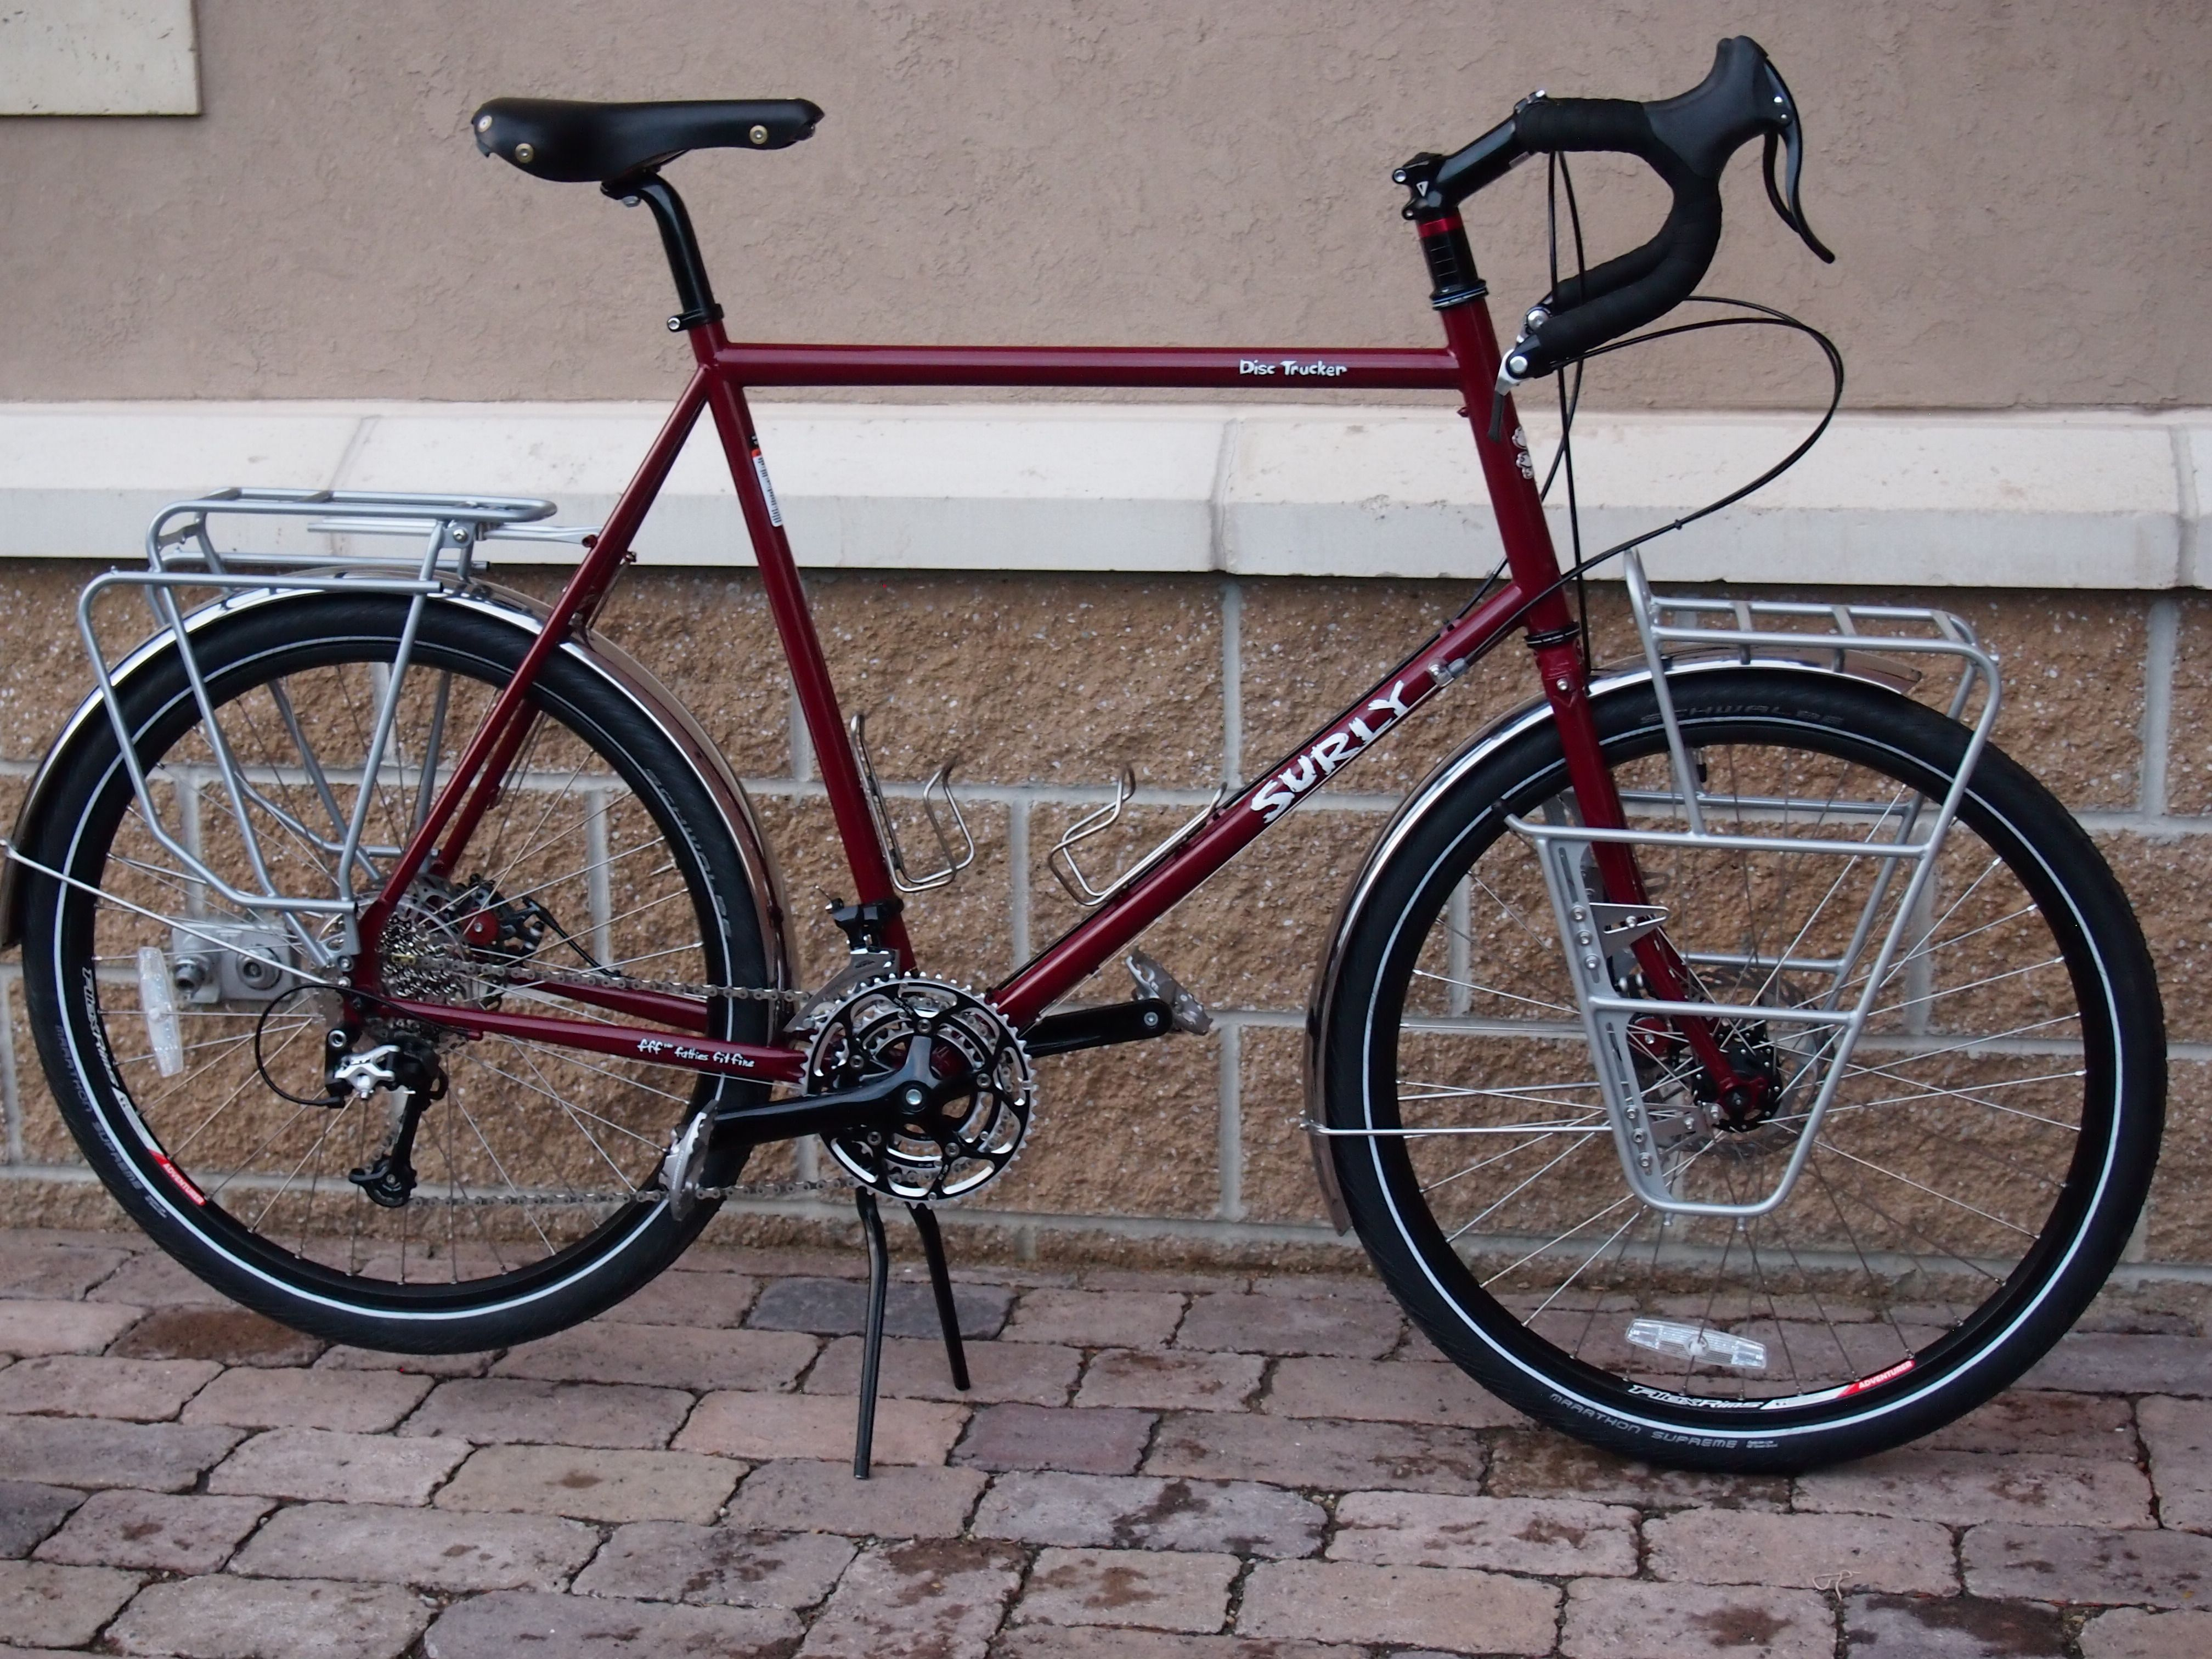 For The Tall Traveler Surly Disc Trucker W 26 Wheels Surly Bike Touring Bike Surly Bikes